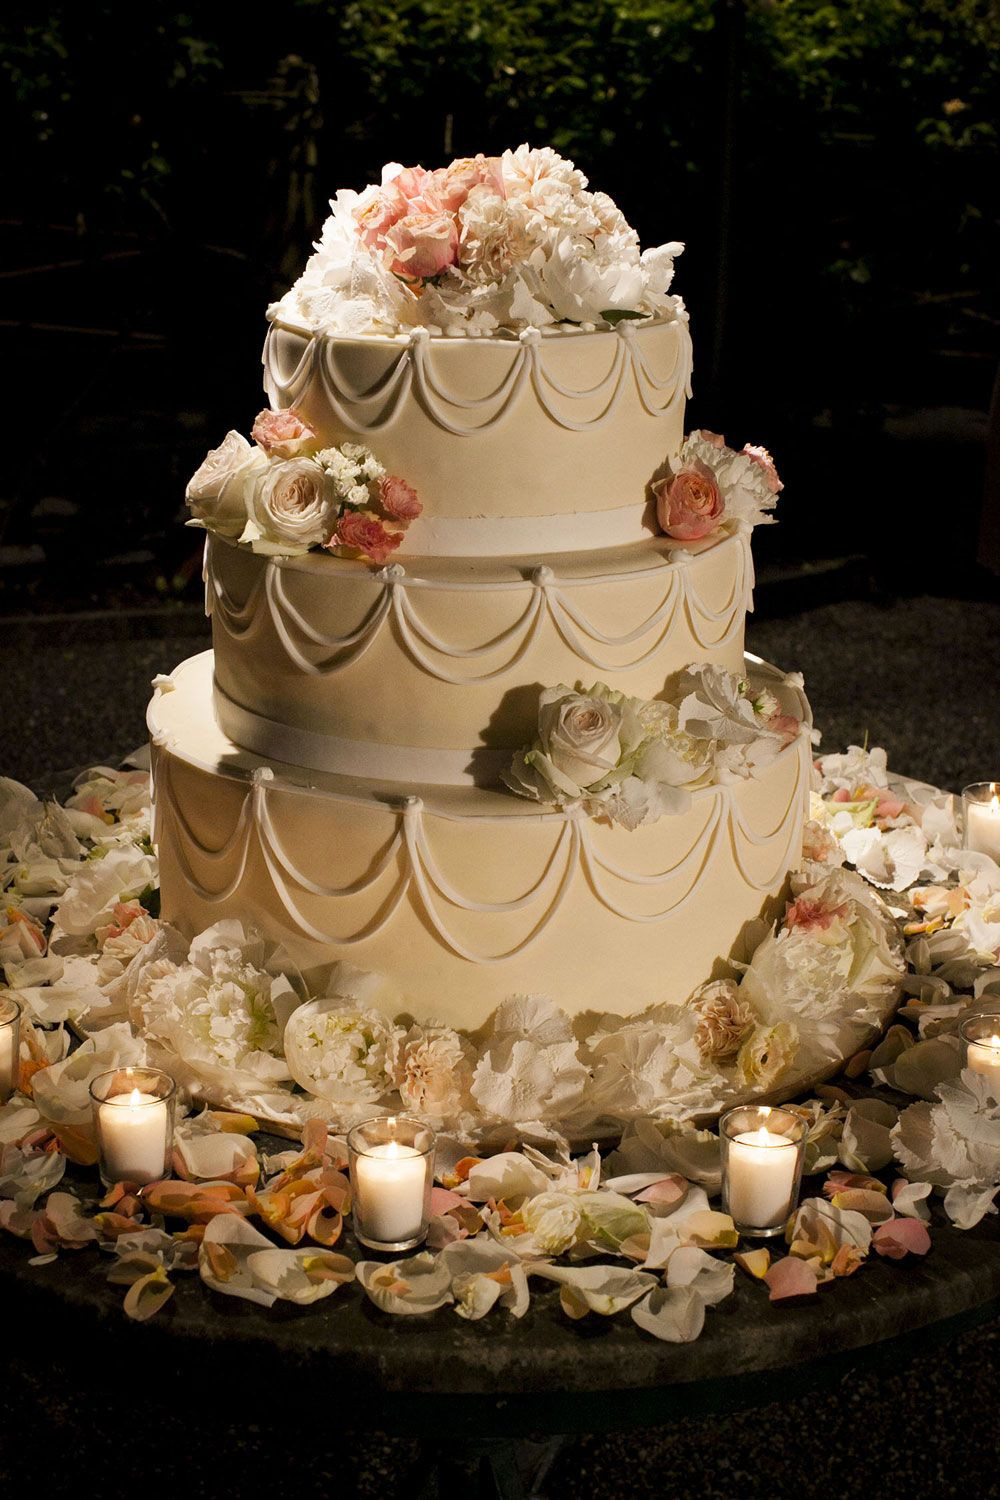 Midevil Wedding Cakes  me val wedding cakes Google Search